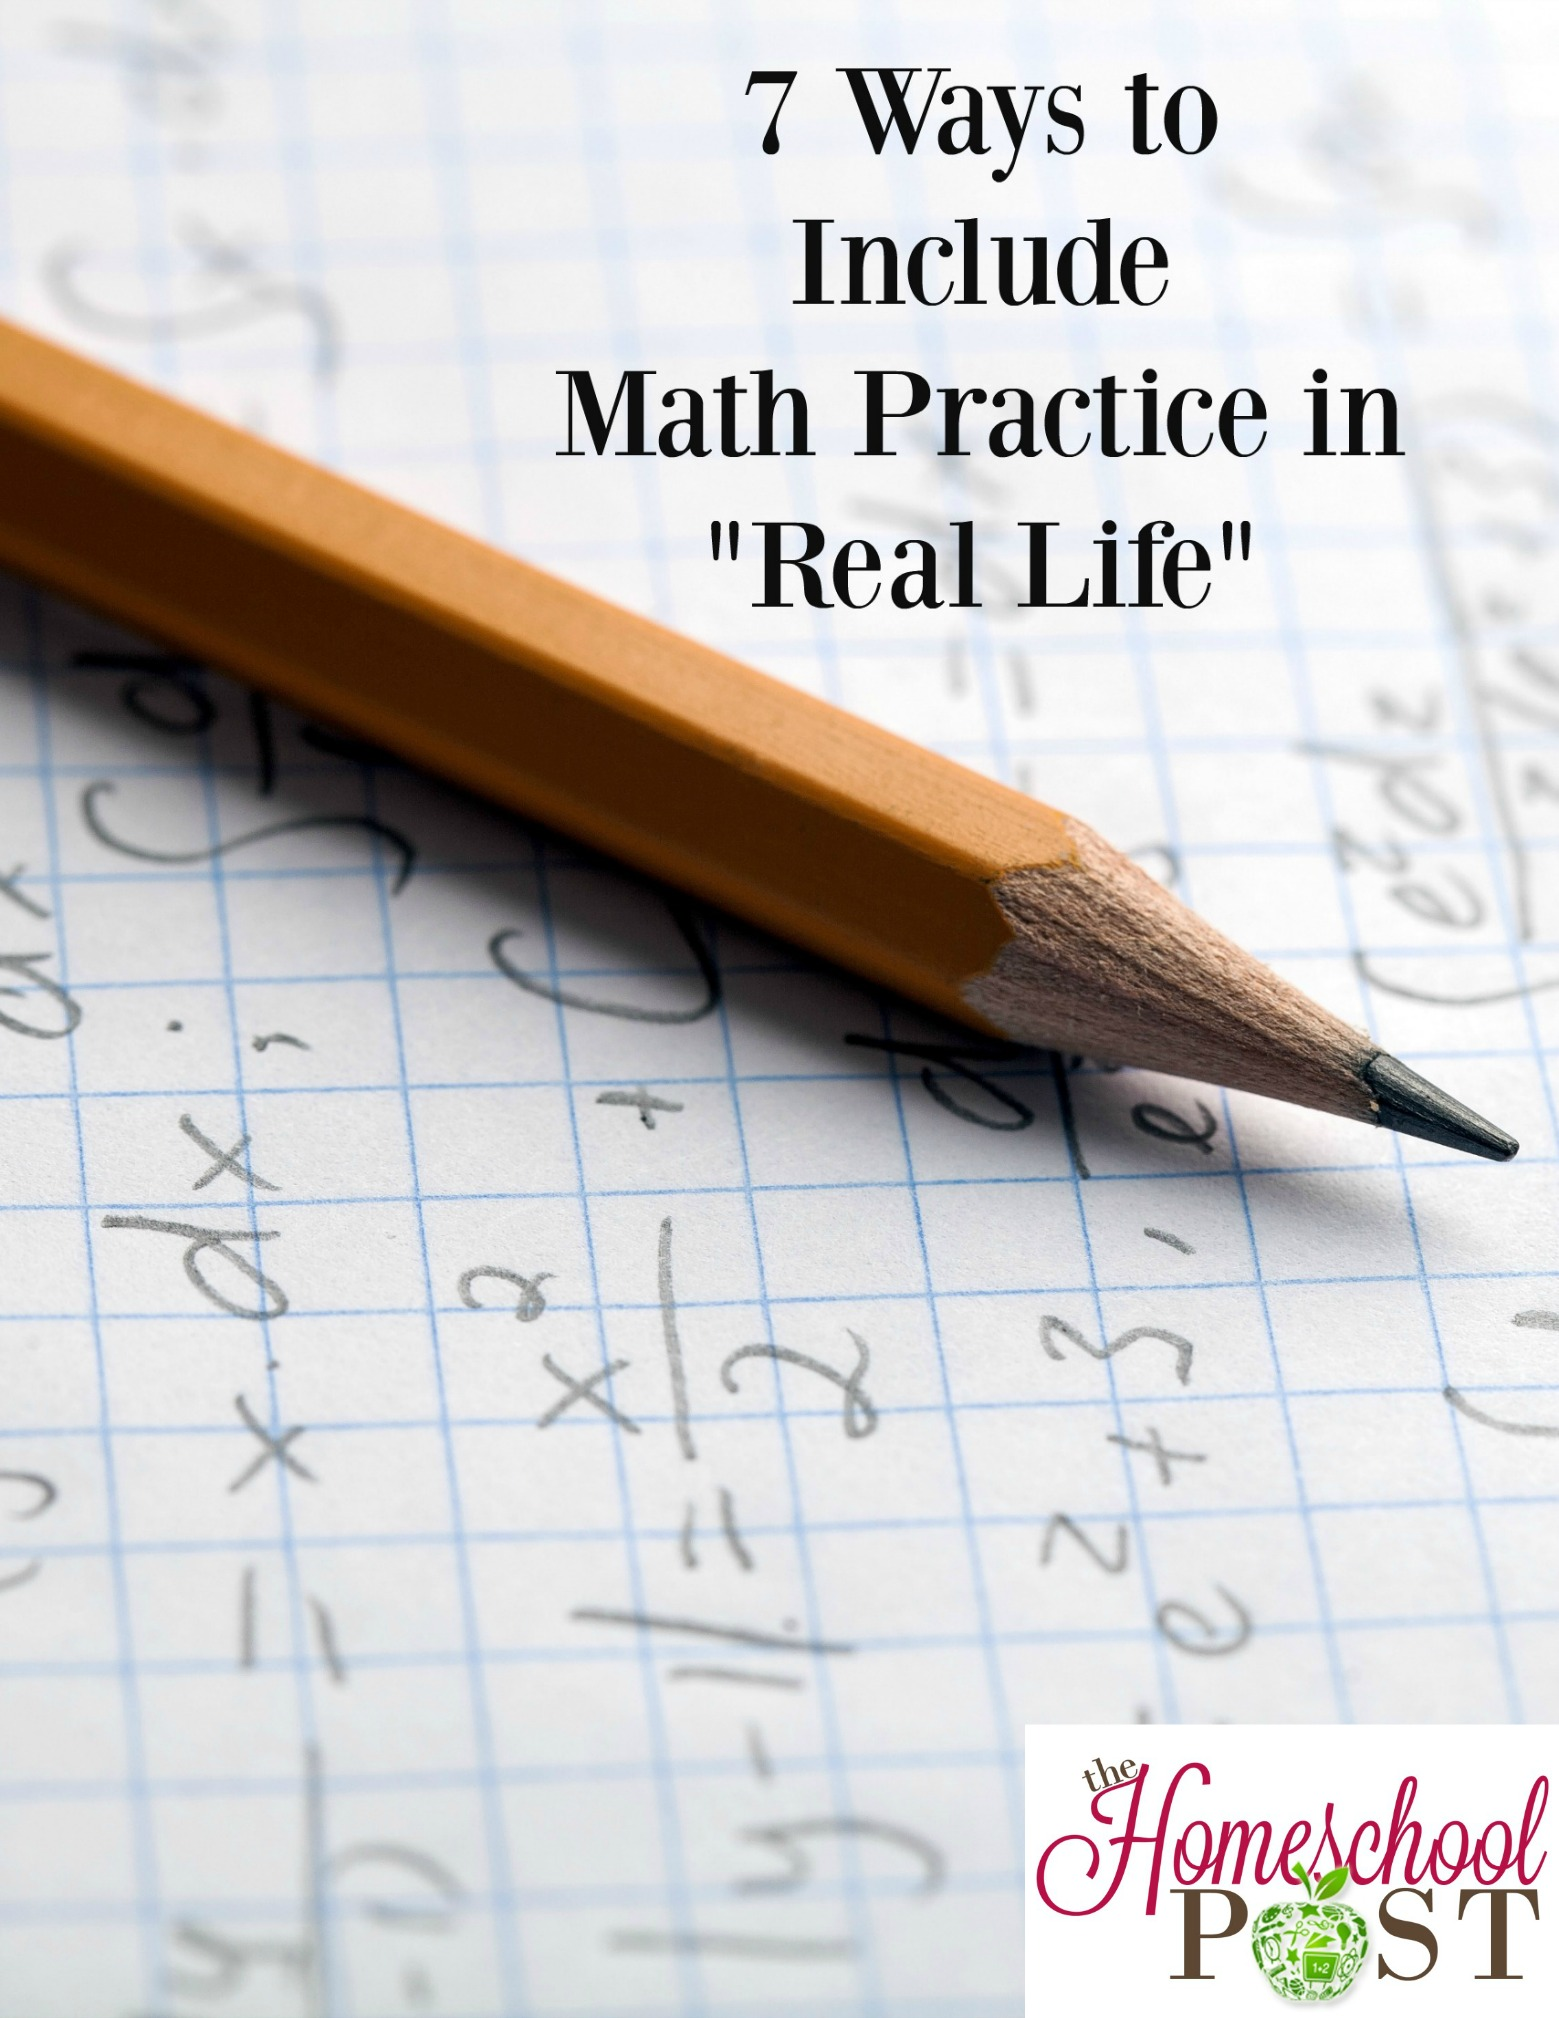 7 ways to include math practice in real life. Life skills homeschooling. hsbapost.com